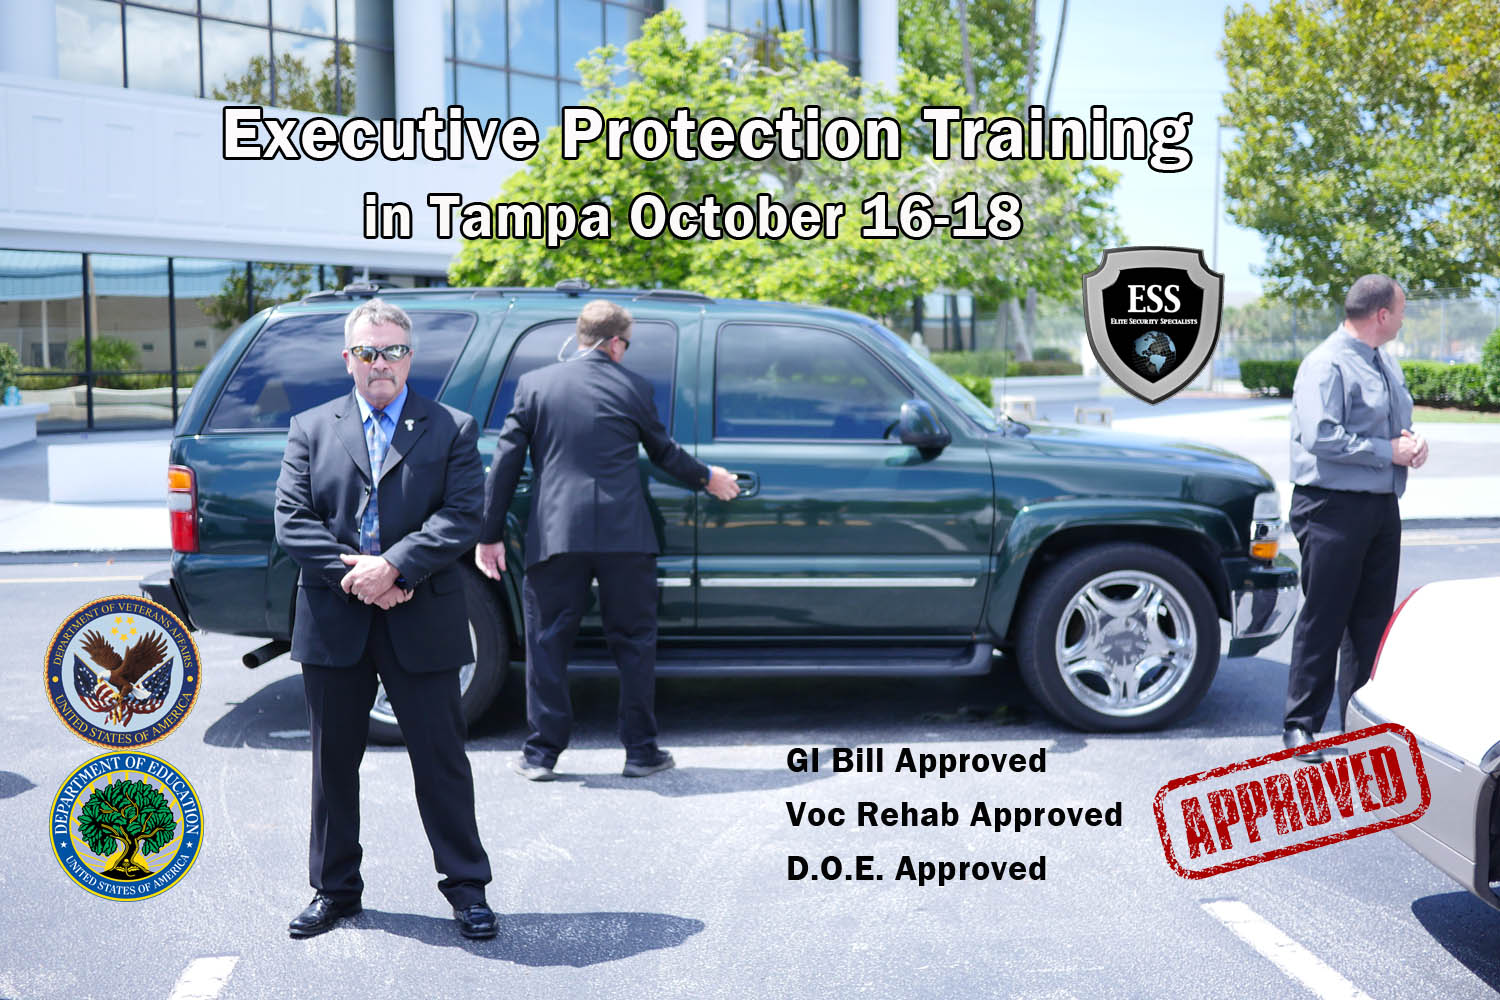 Executive protection training in tampa october 16 19 at ess global executive protection training in tampa october 16 19 at ess global corp 1betcityfo Gallery